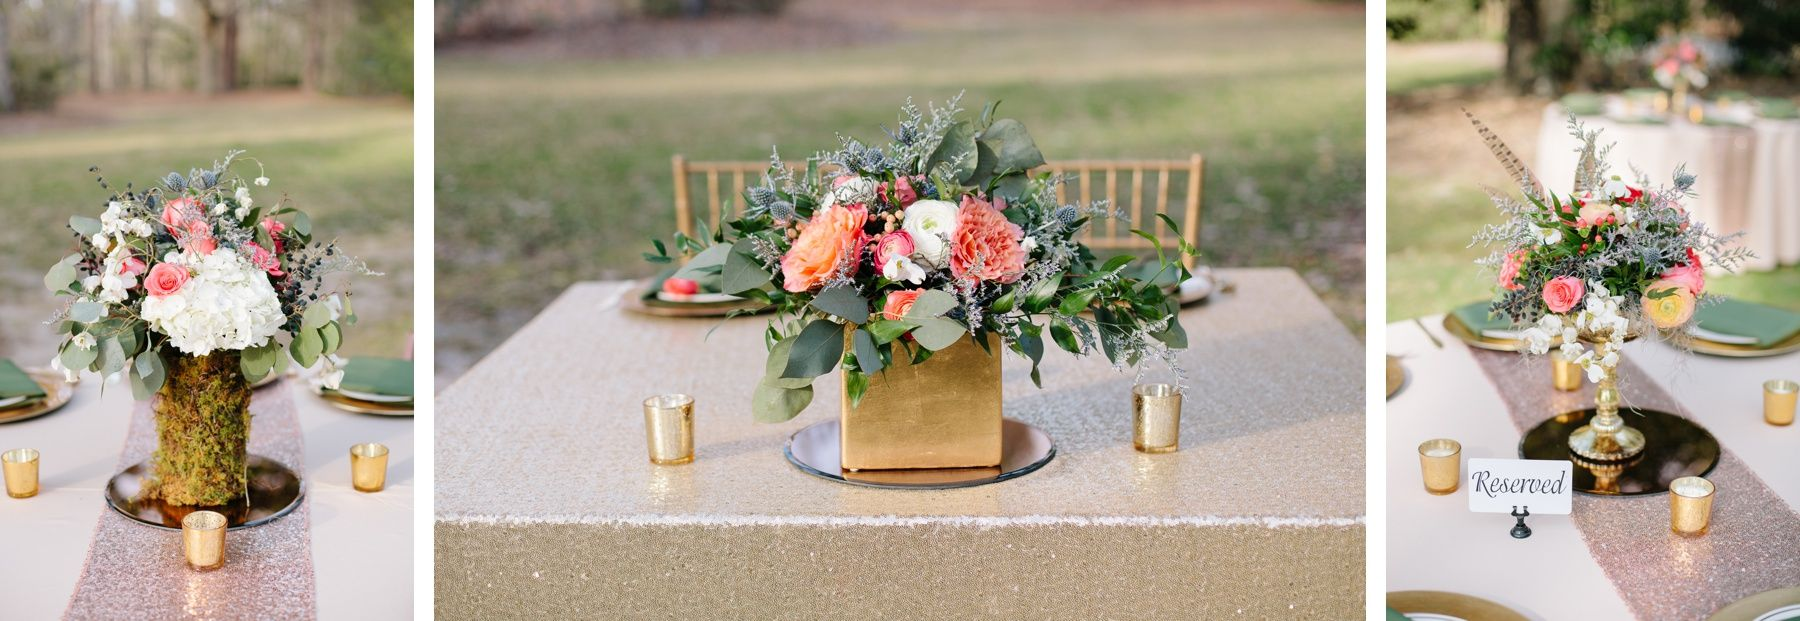 Absolutely Stunning Colorful Ranunculus Peony And Feather Centerpieces Givhans Ferry State Park Wedding